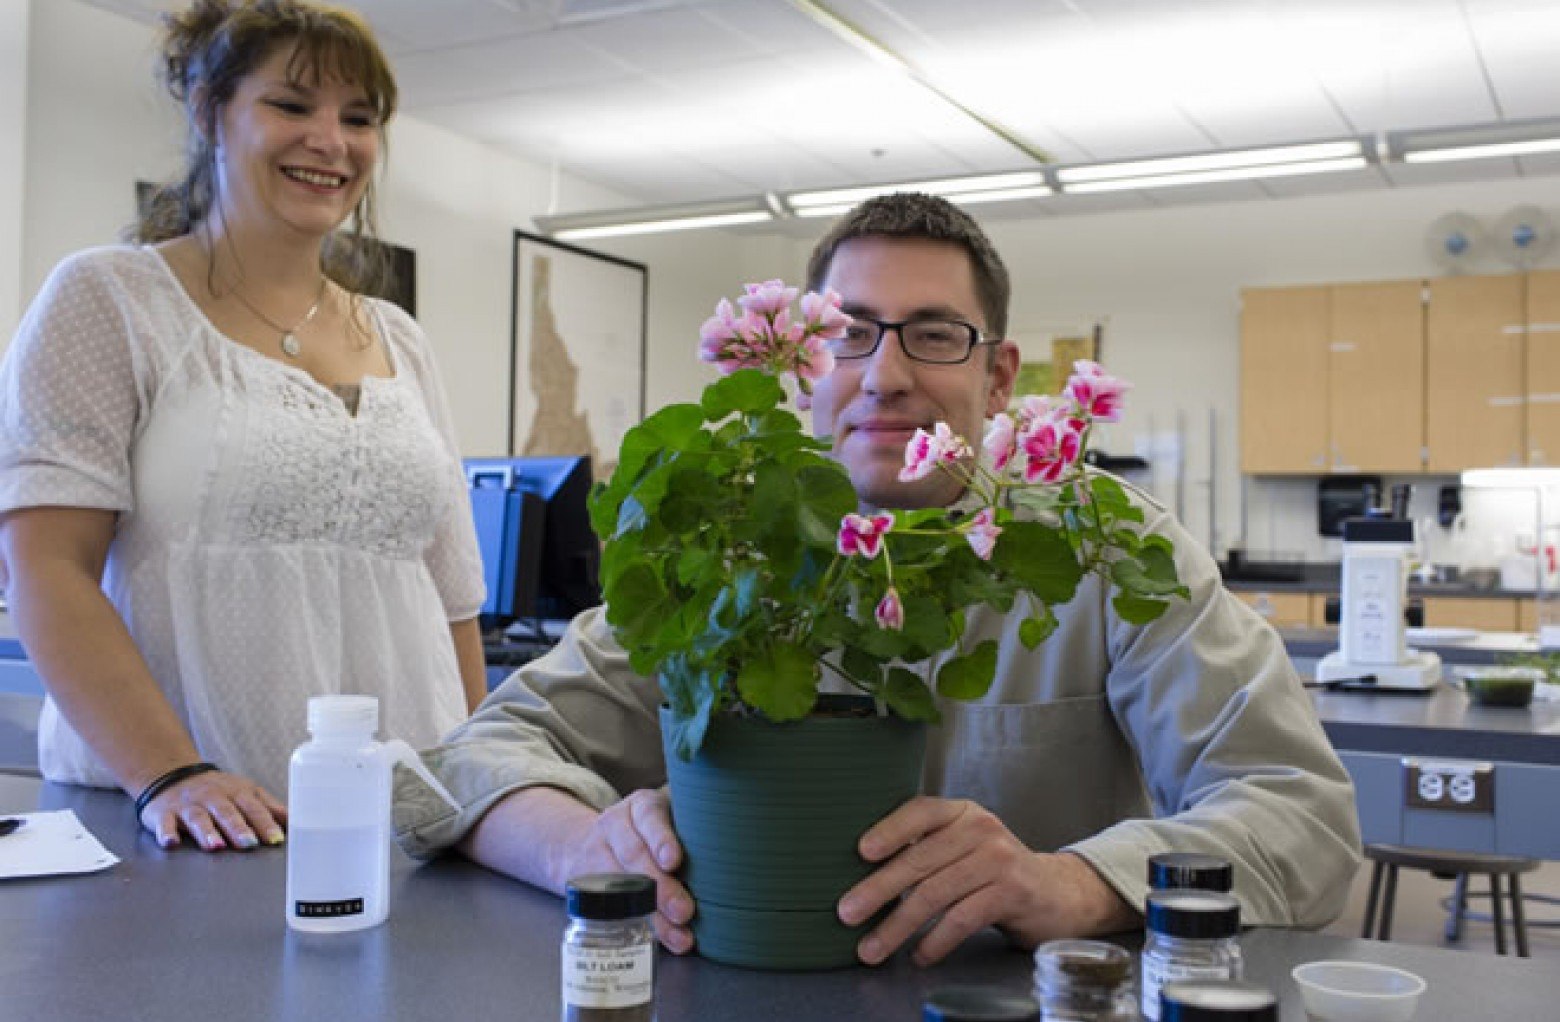 Two students testing flower pot soil in agriculture science lab